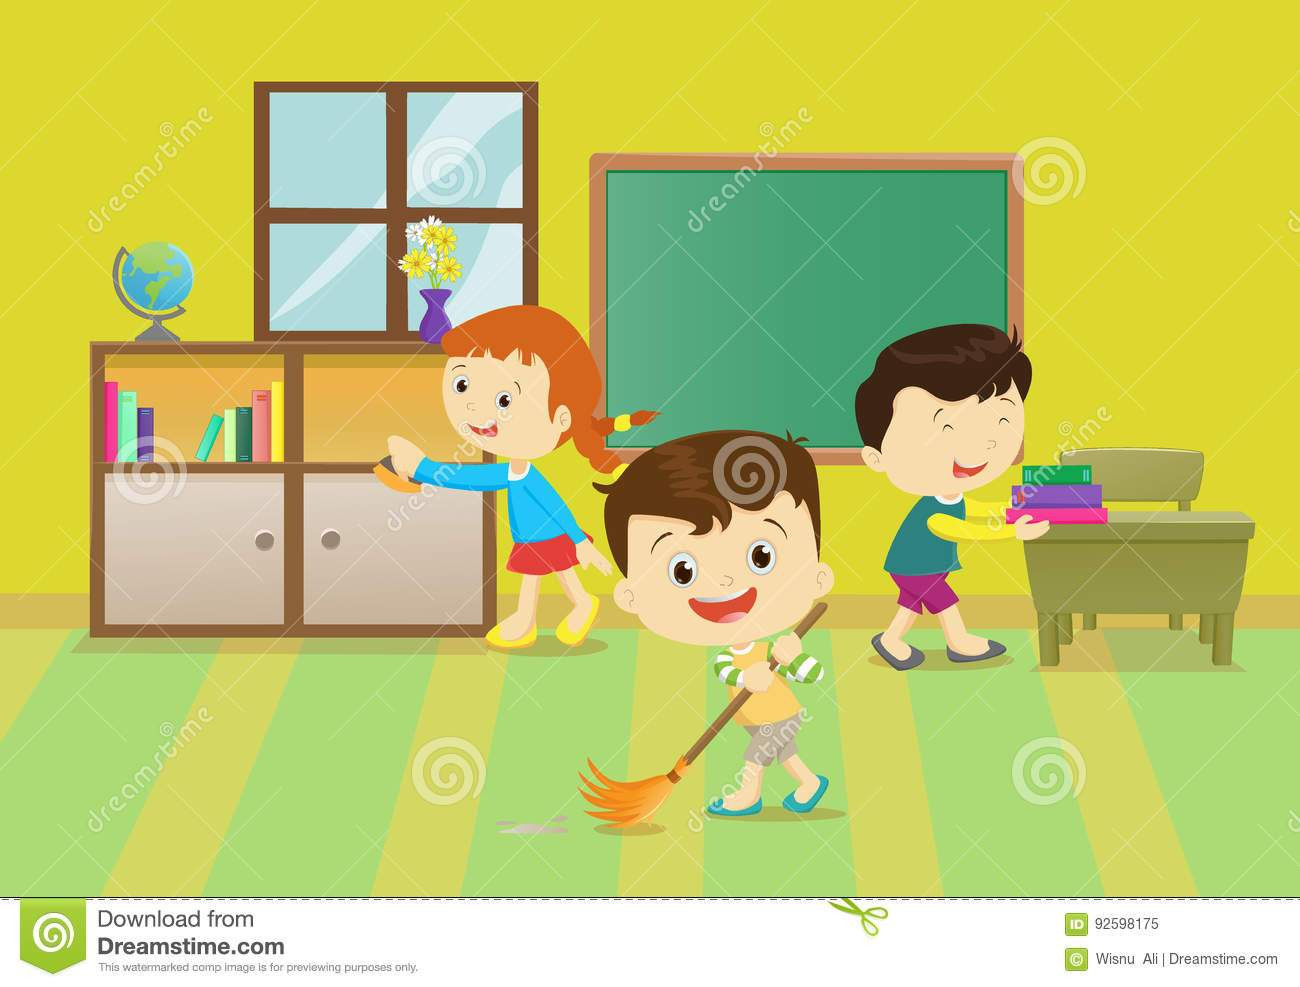 Cleaning classroom clipart svg library library Children cleaning the classroom clipart 6 » Clipart Portal svg library library